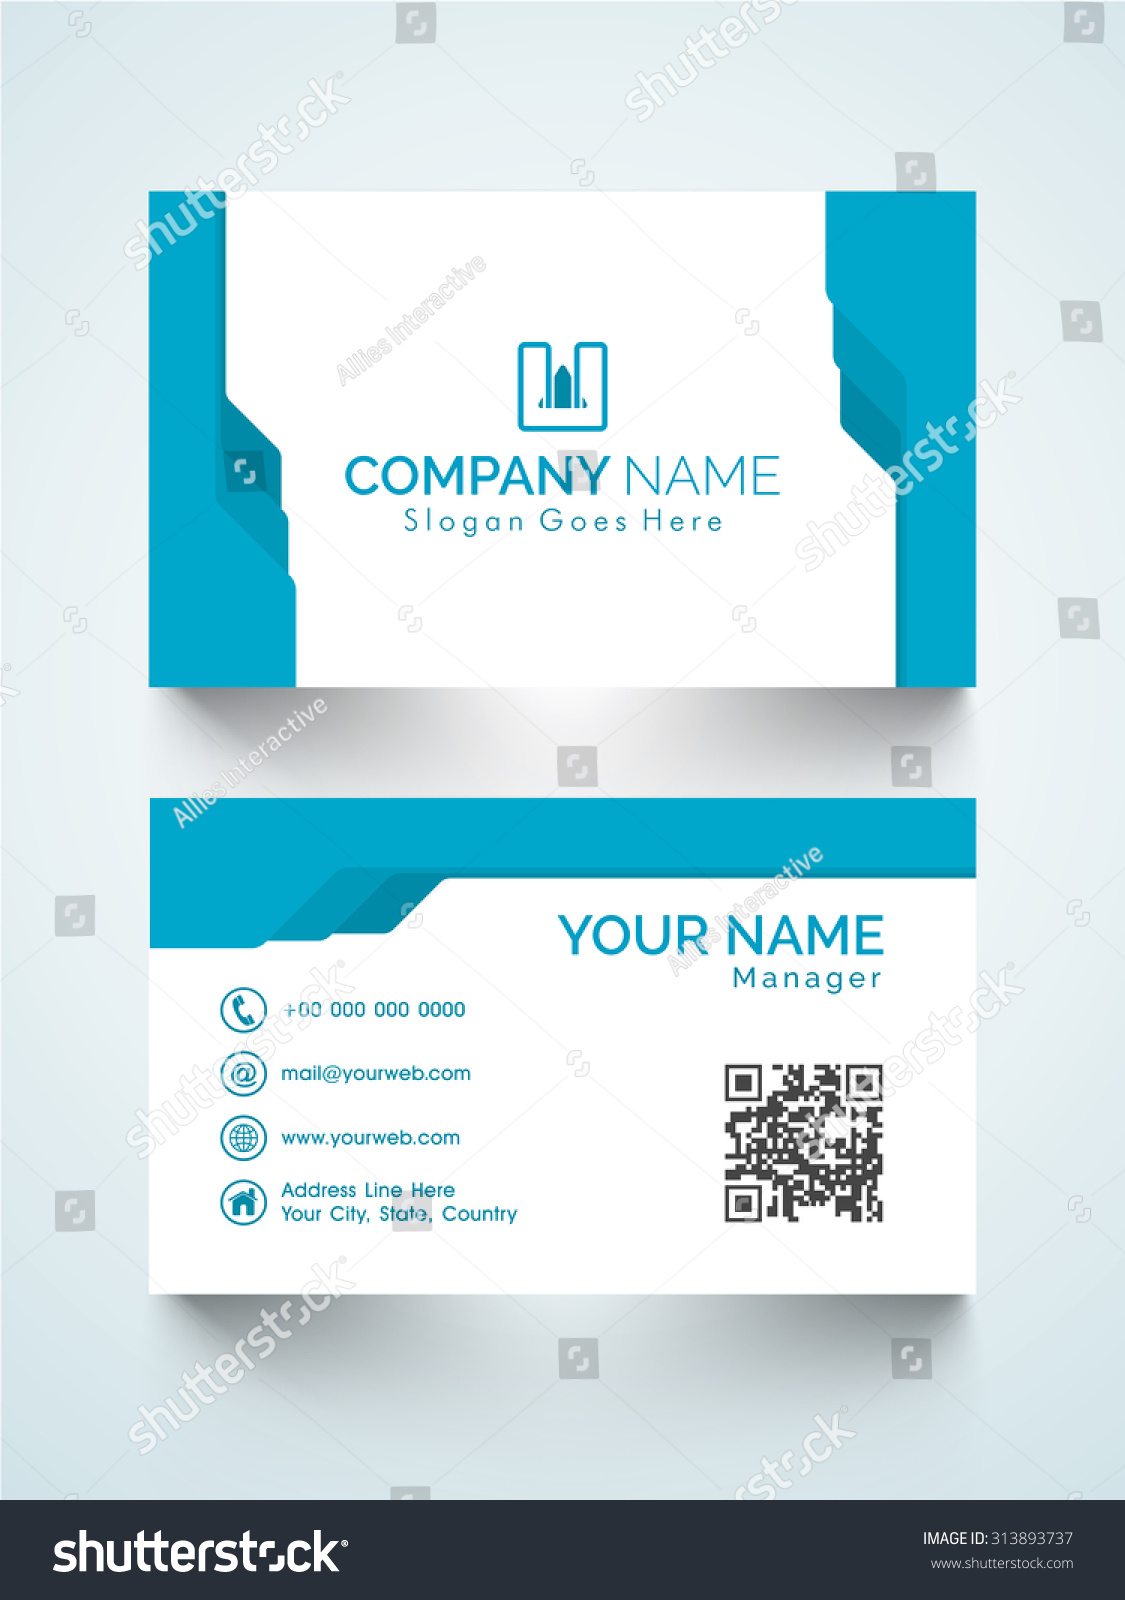 Creative horizontal business card visiting card stock vector creative horizontal business card or visiting card design for your company colourmoves